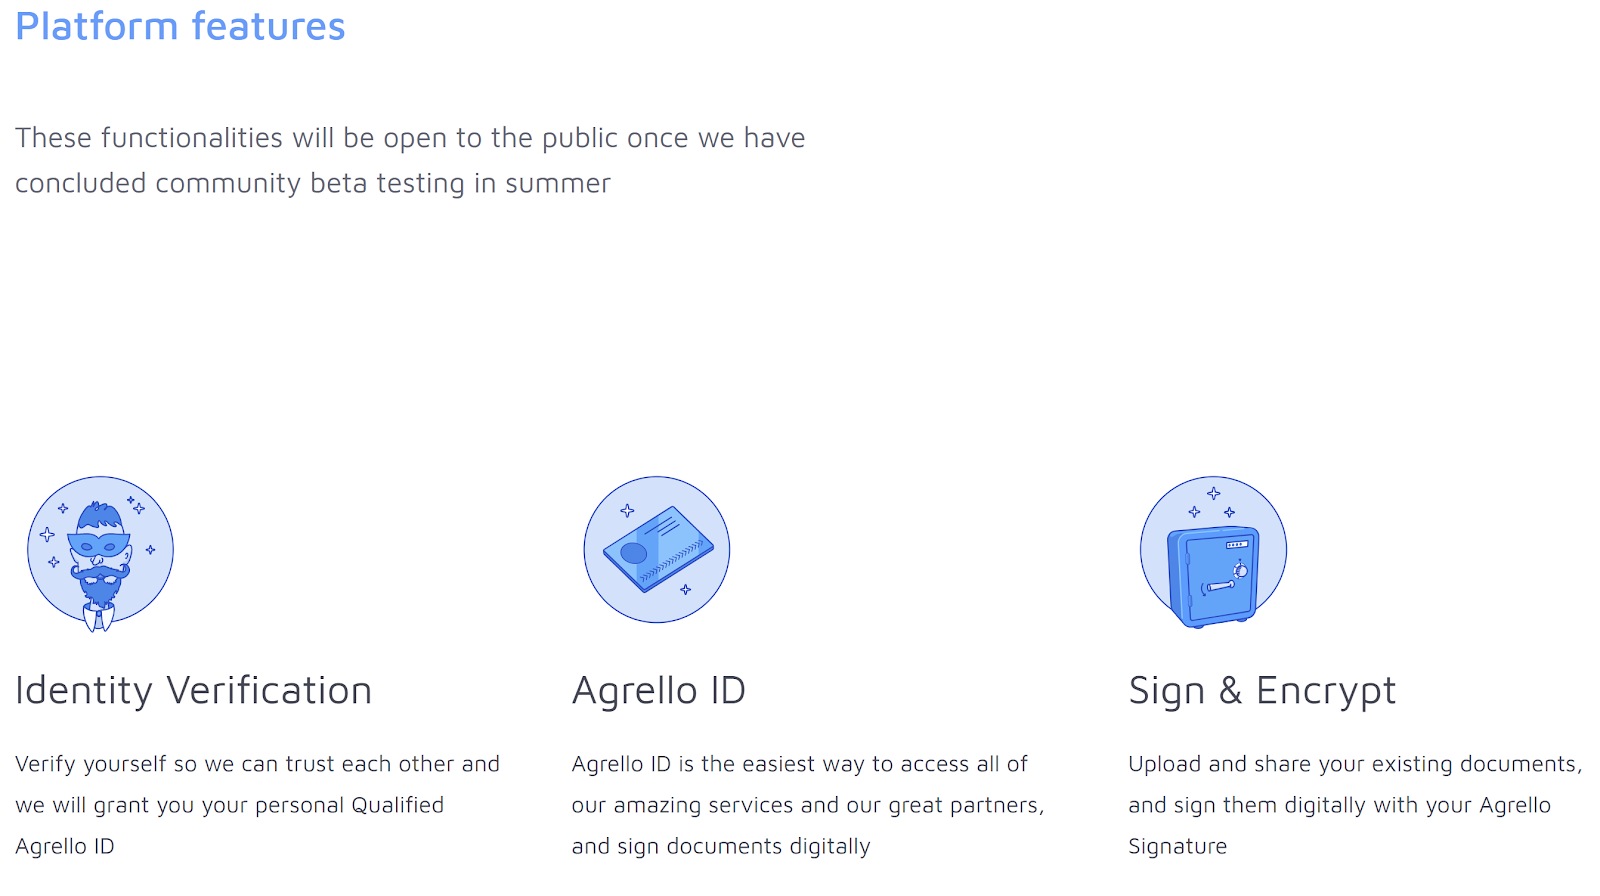 Agrello platform features